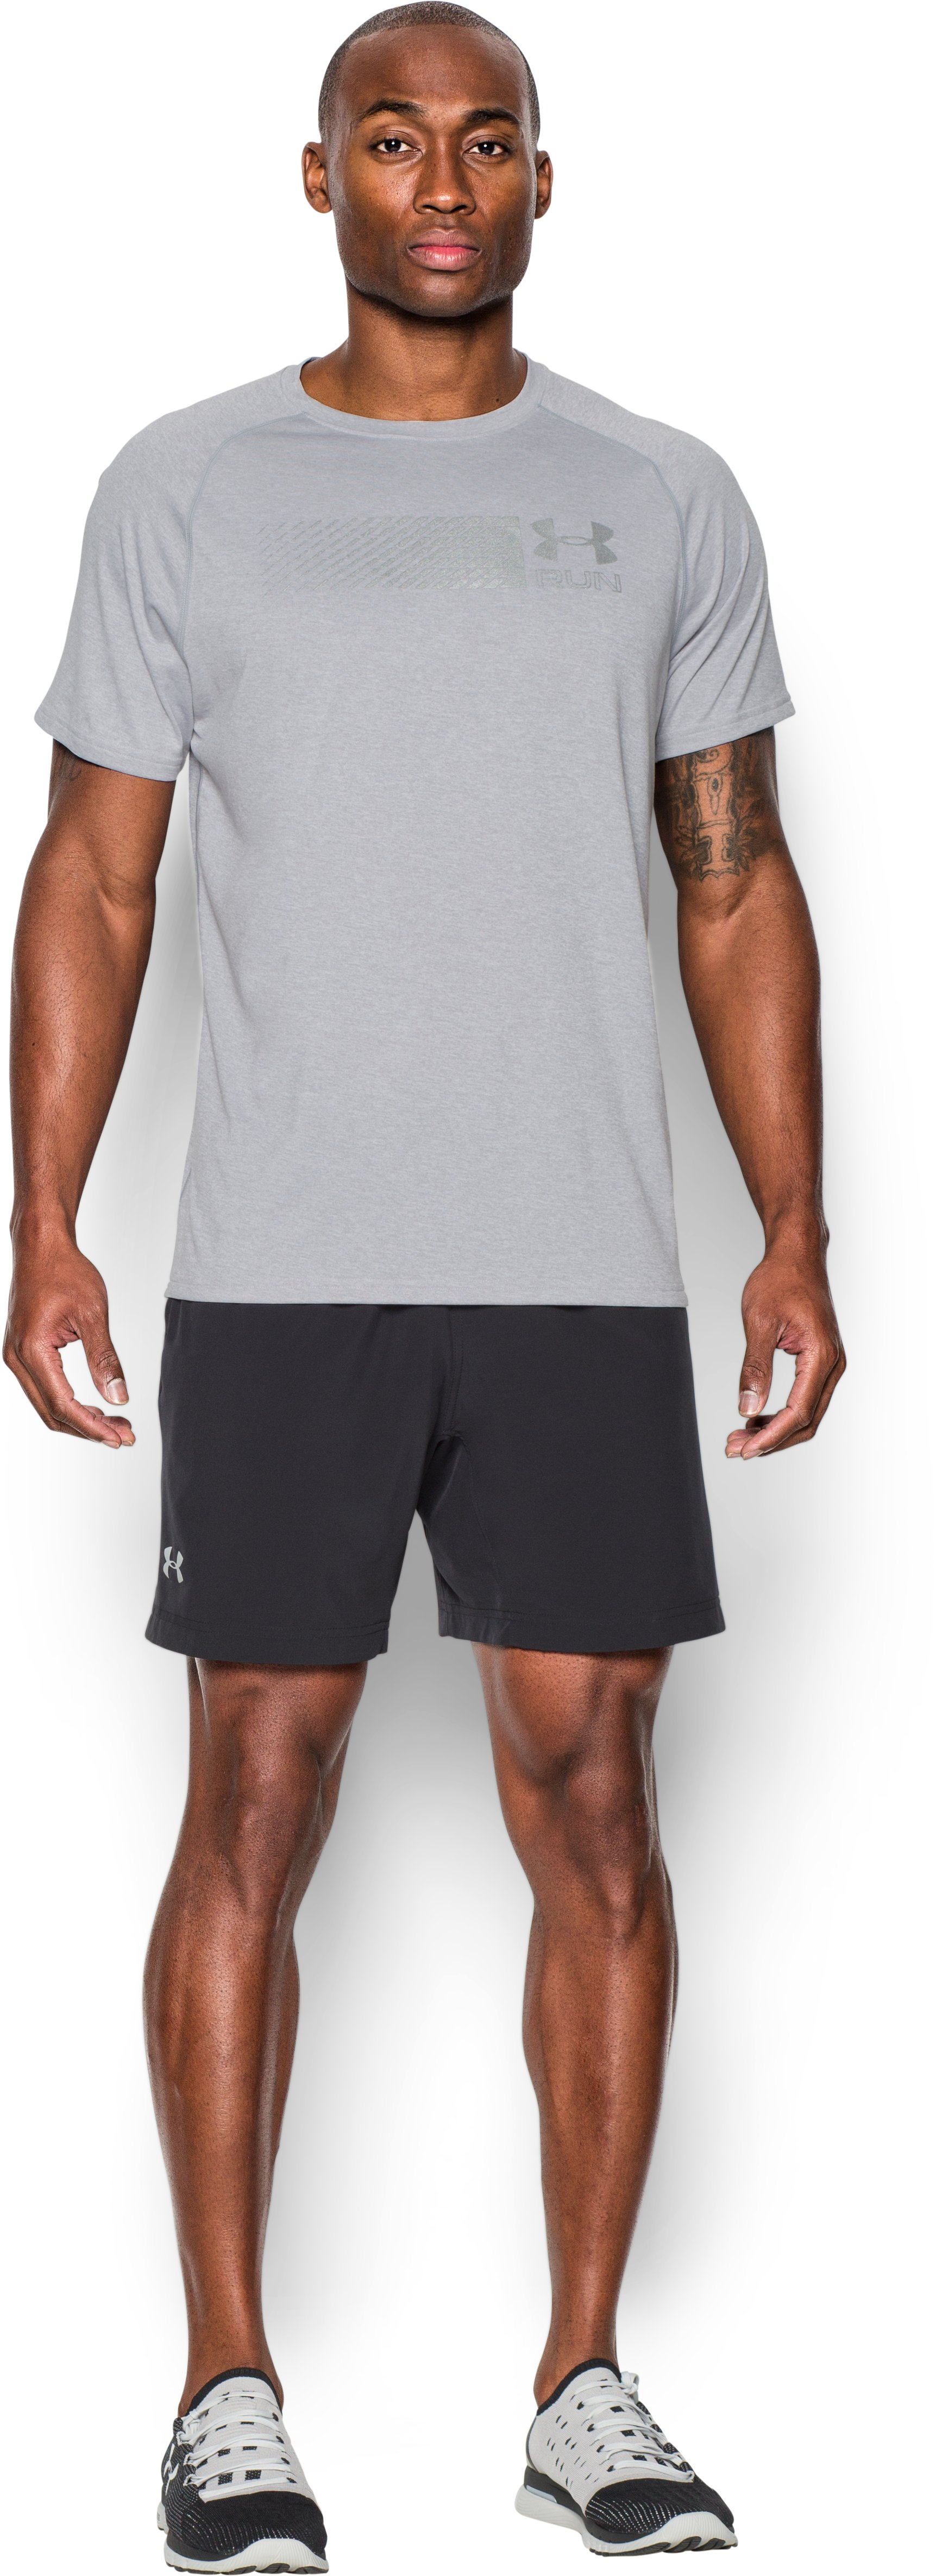 Men's UA Run T-Shirt, AIR FORCE GRAY HEATHER